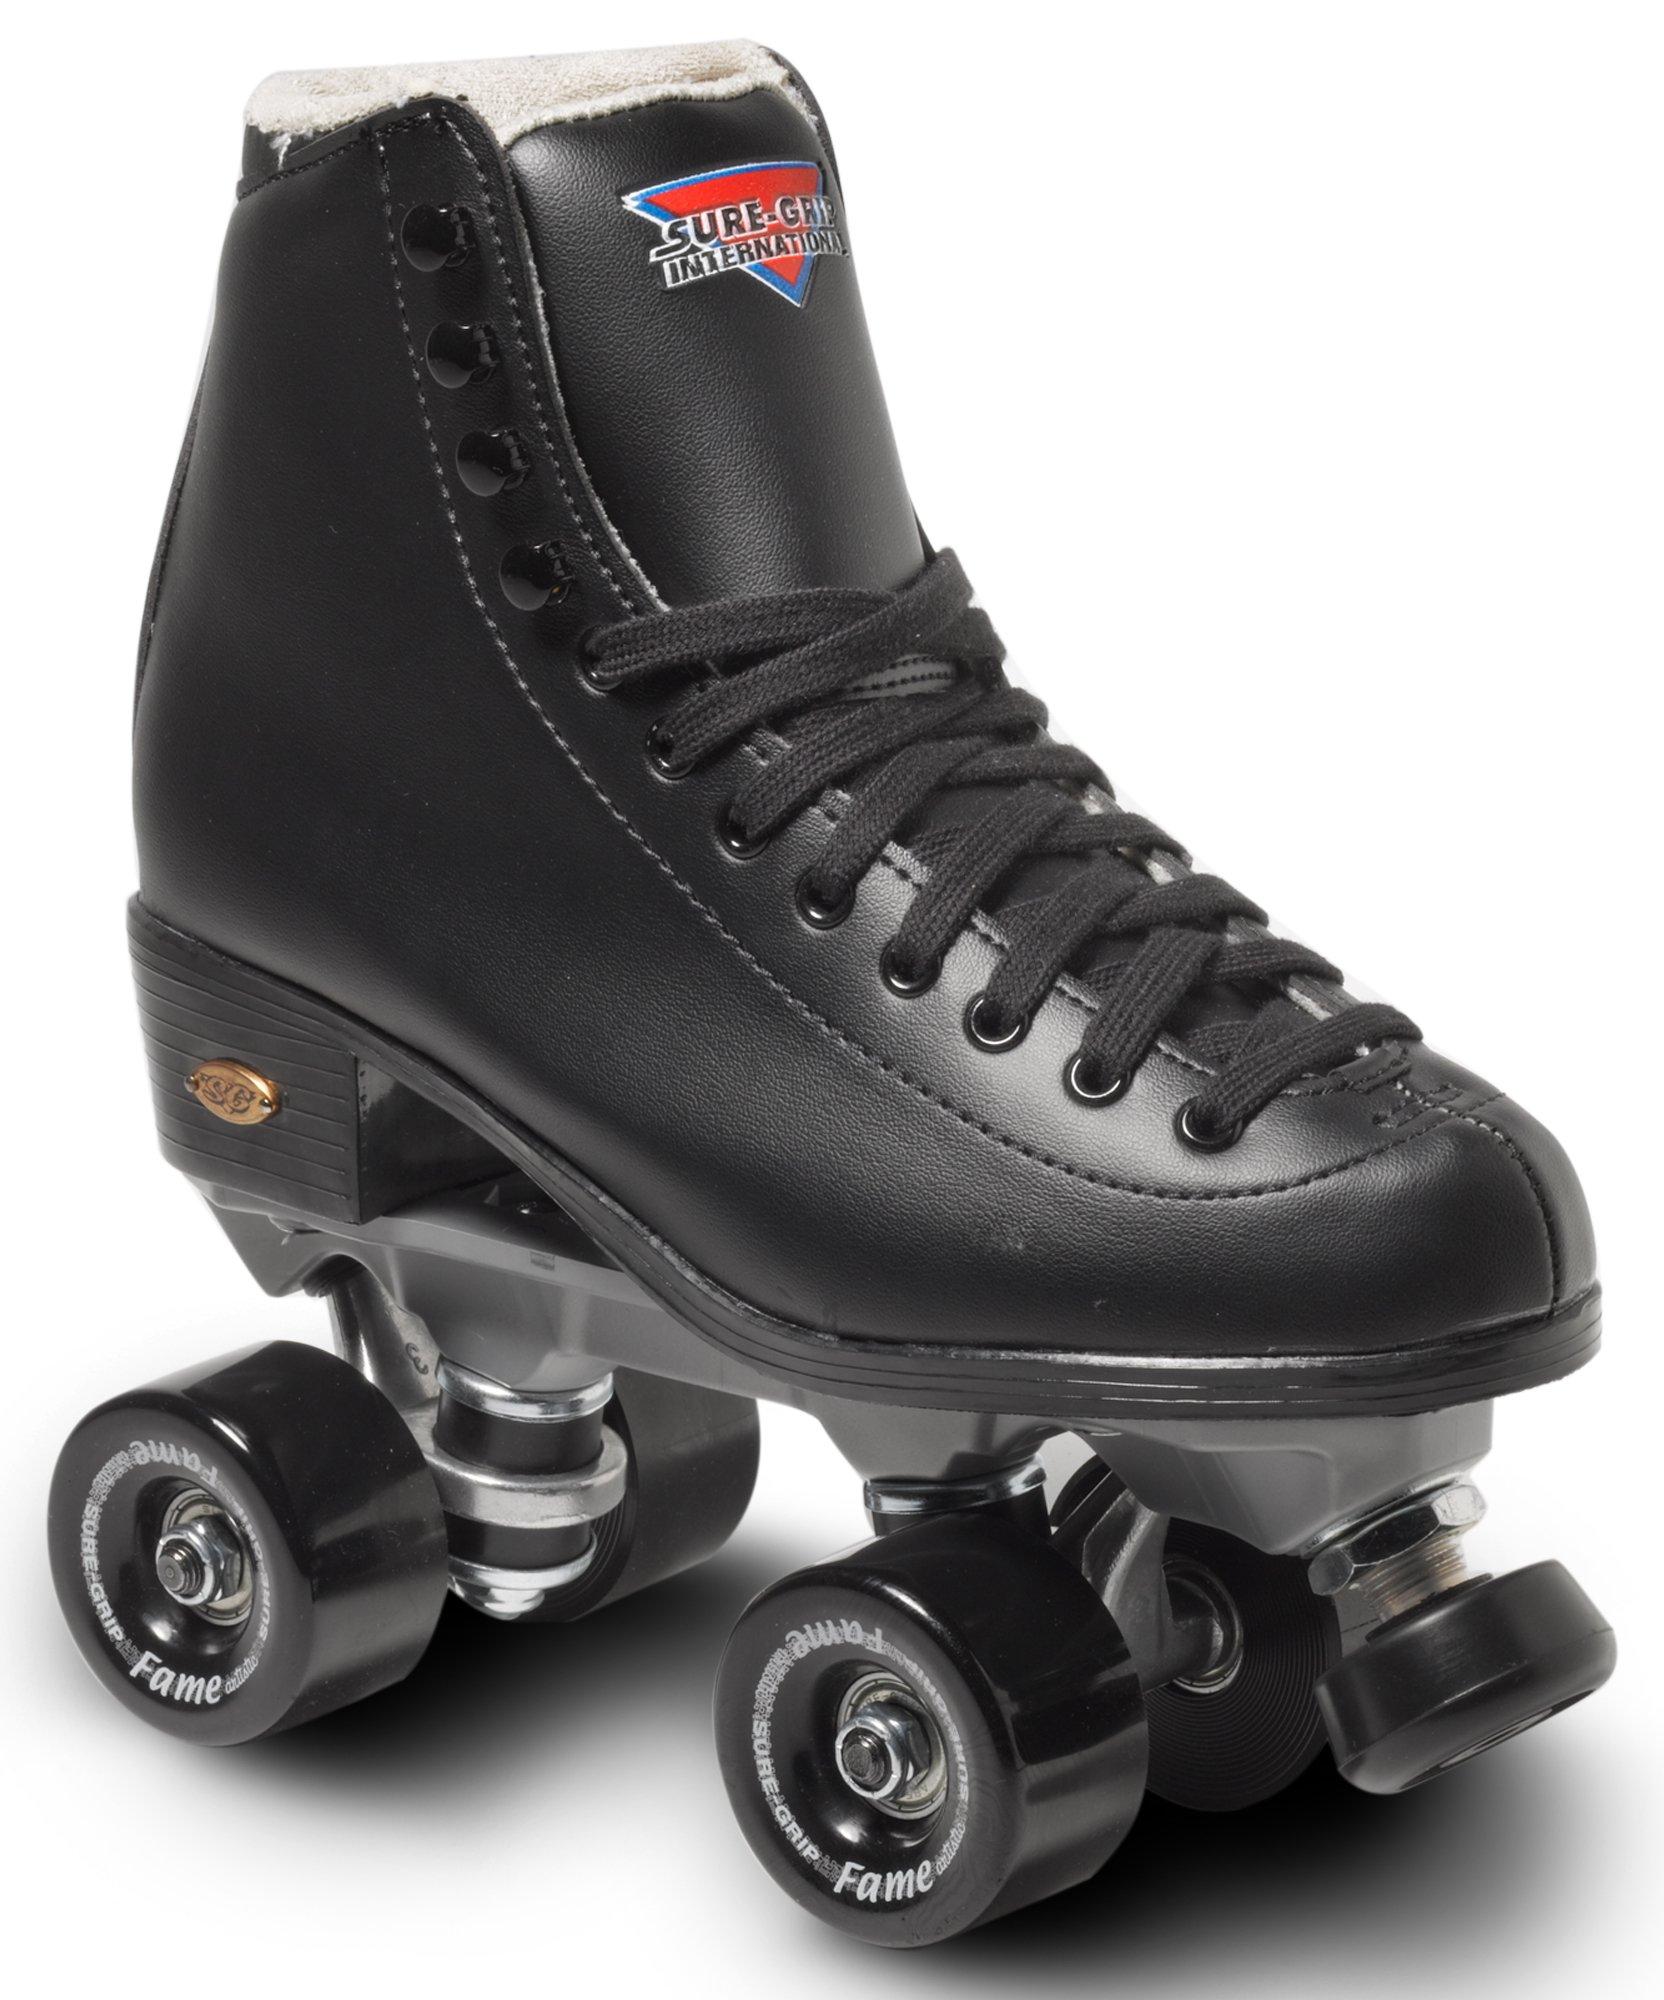 Sure-Grip Black Fame Roller Skate